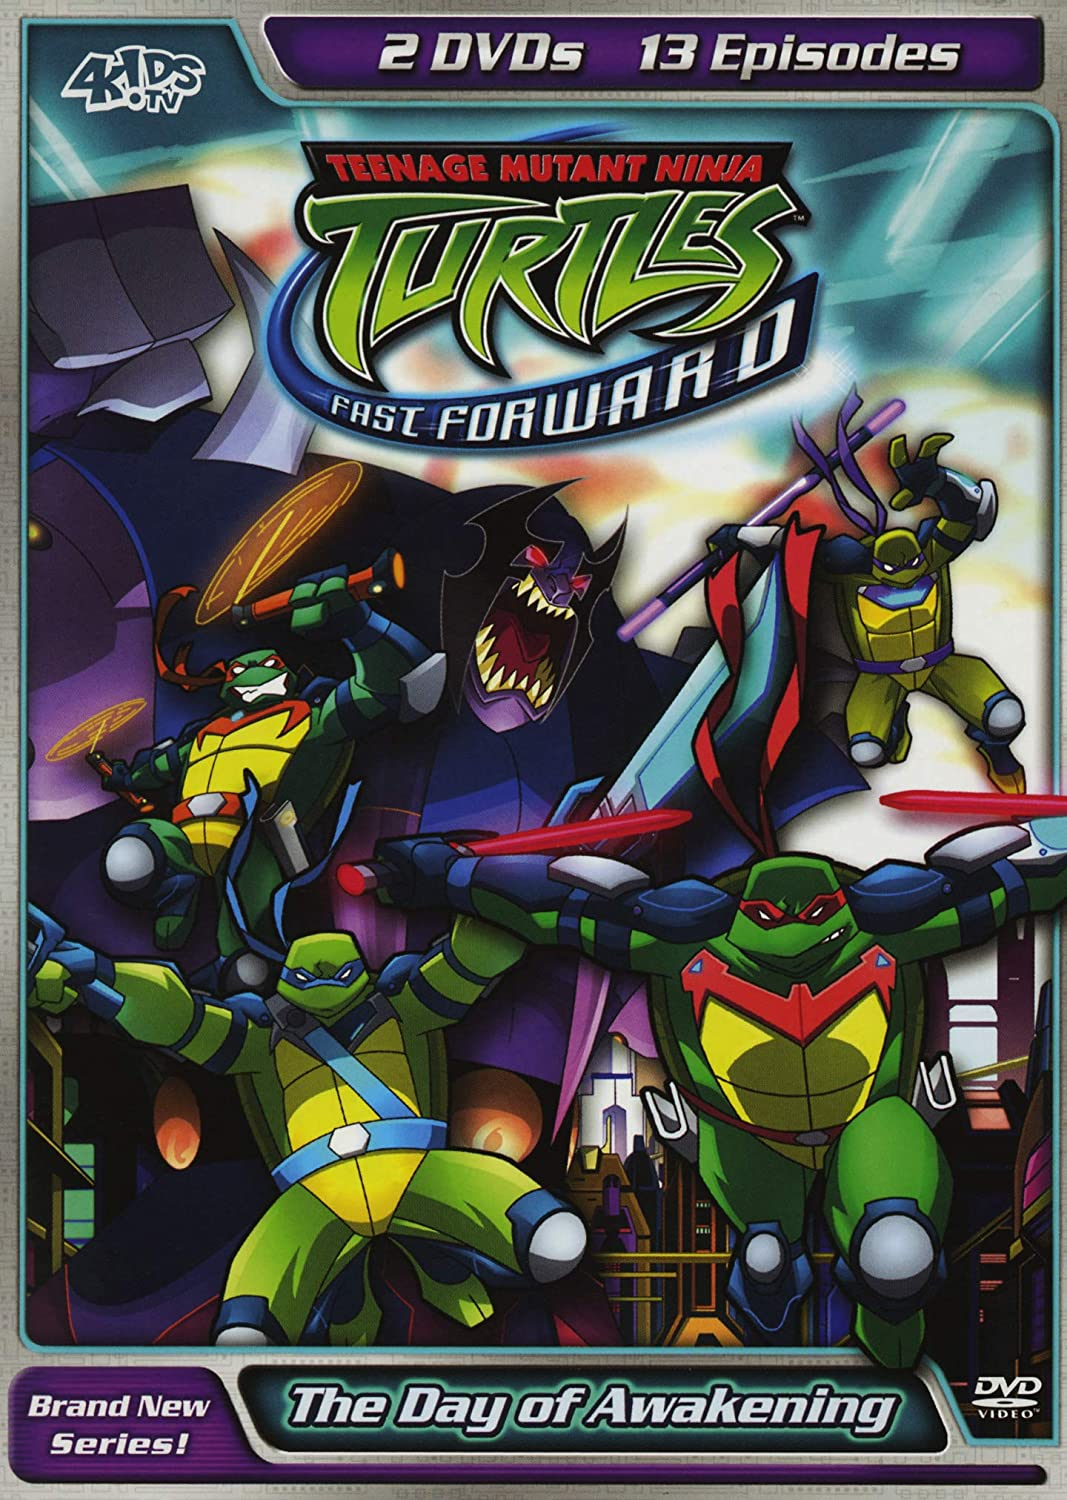 Amazon.com: Teenage Mutant Ninja Turtles: Fast Forward - The ...